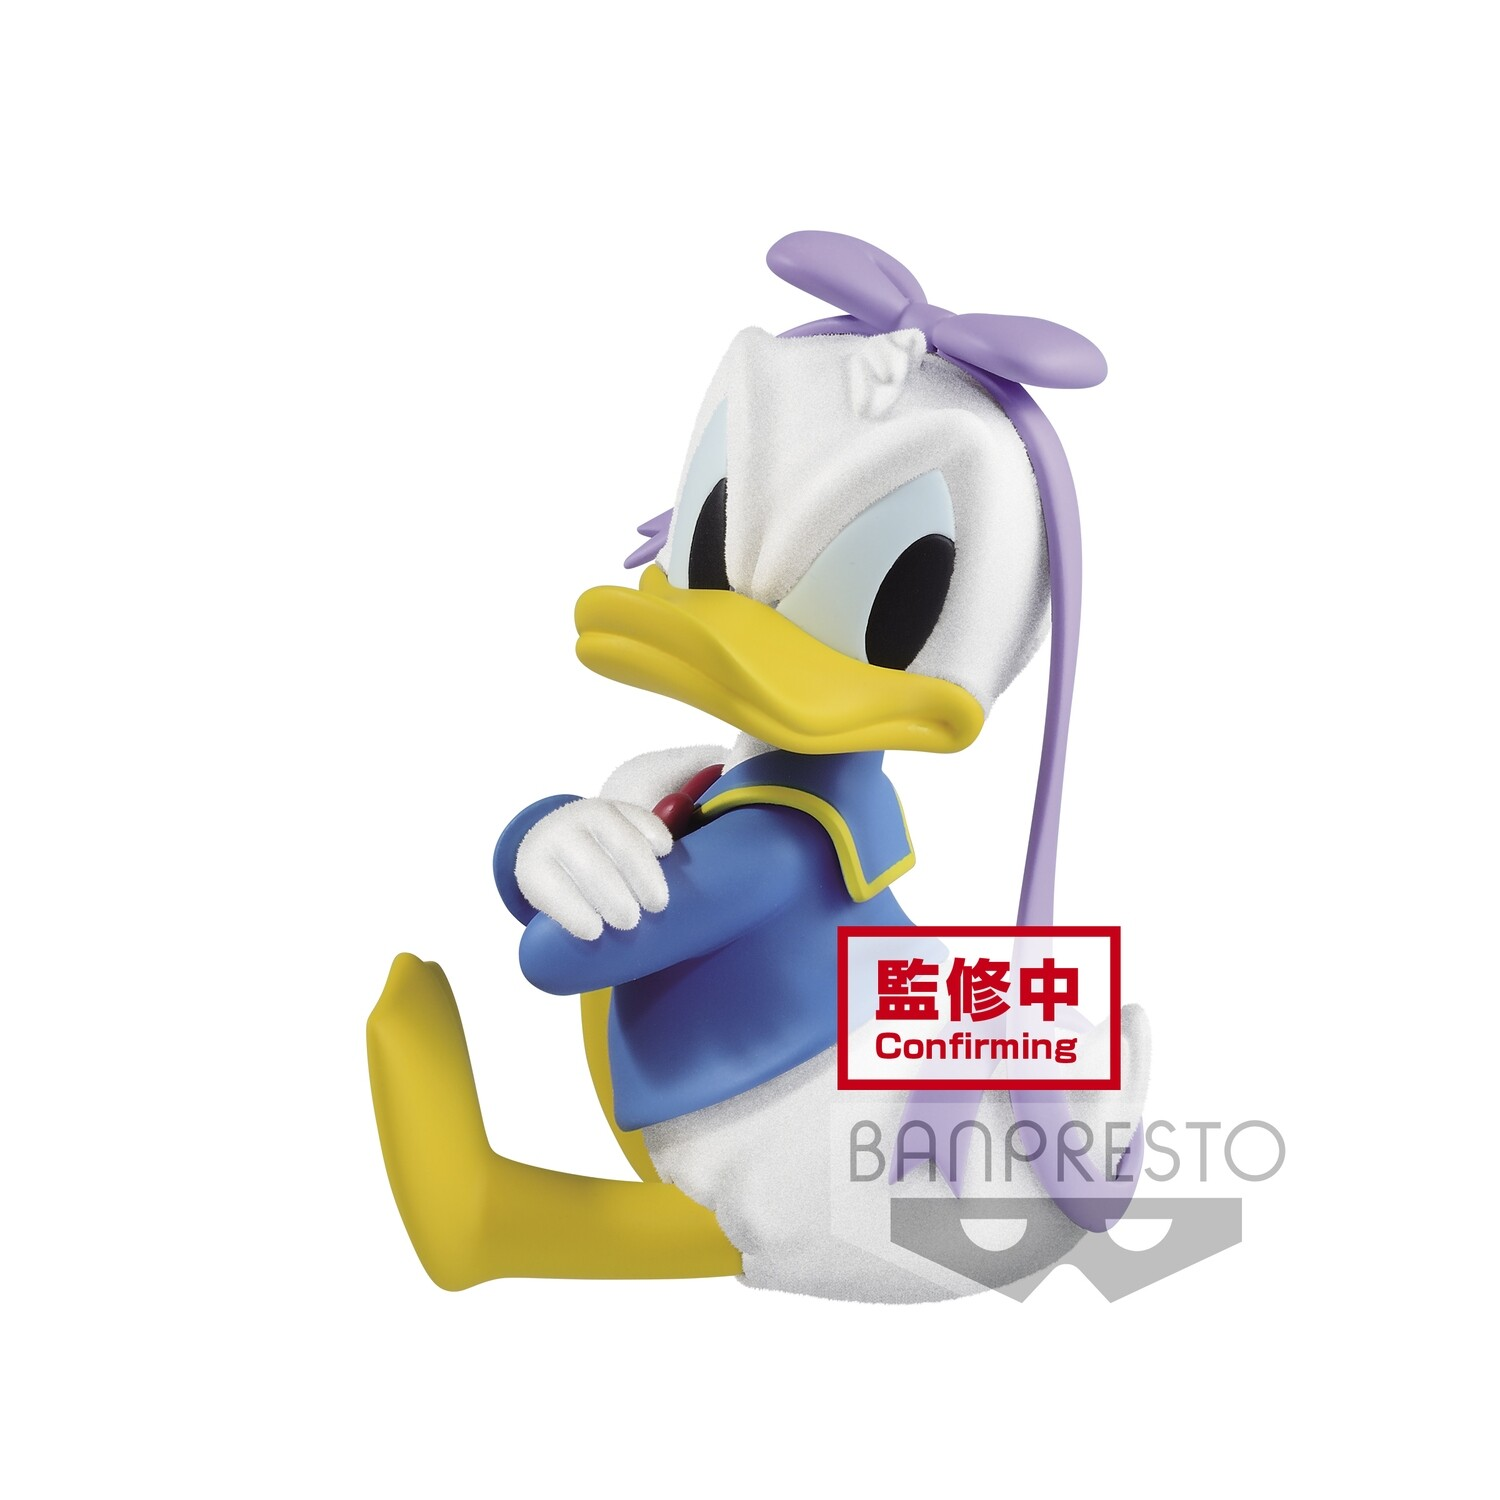 Banpresto DISNEY CHARACTERS FLUFFY PUFFY DONALD DUCK VER.B